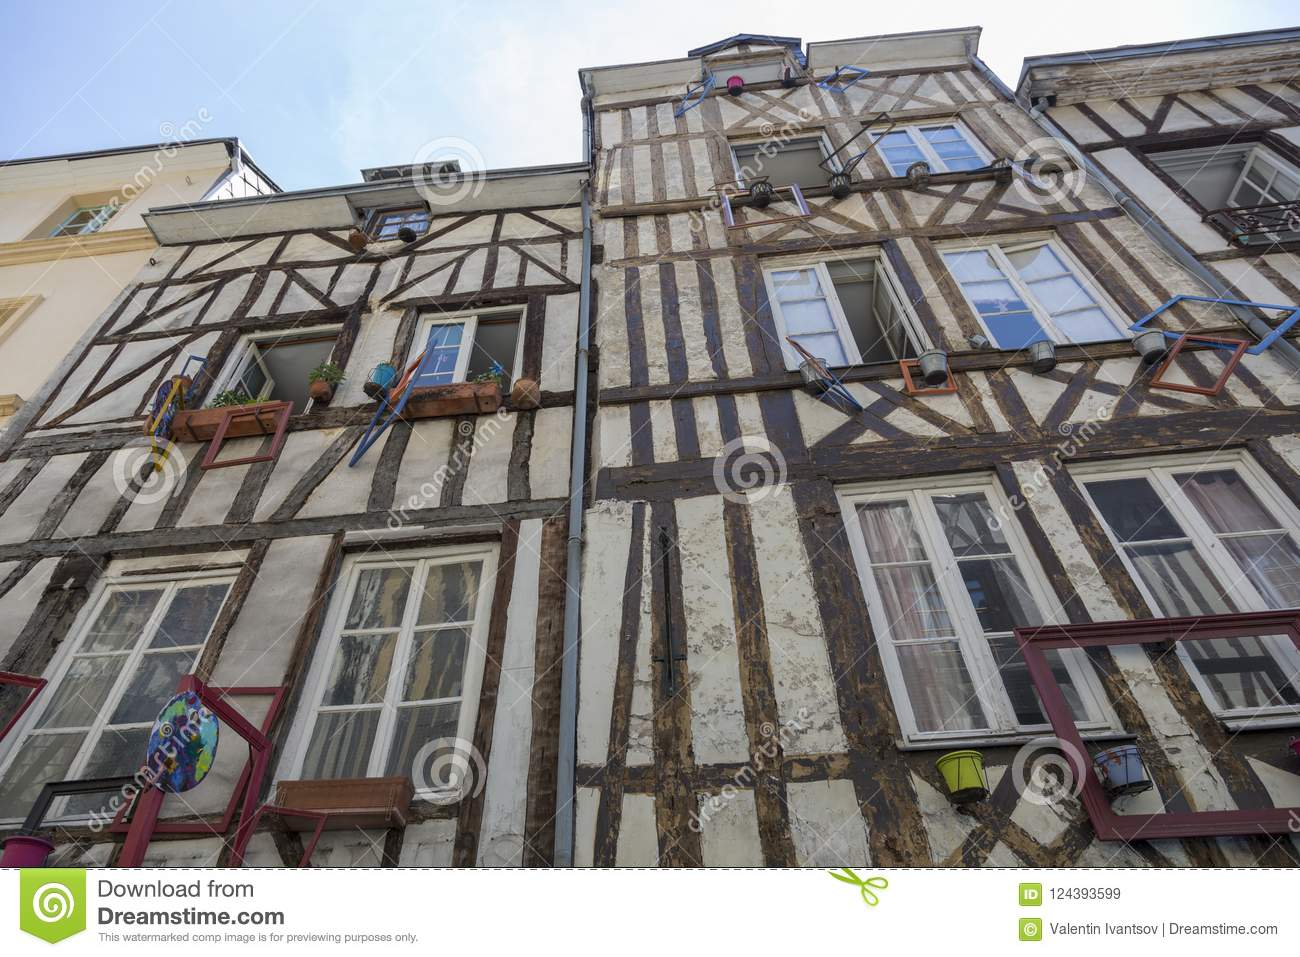 Half-timbered houses: what is it, construction technology 98